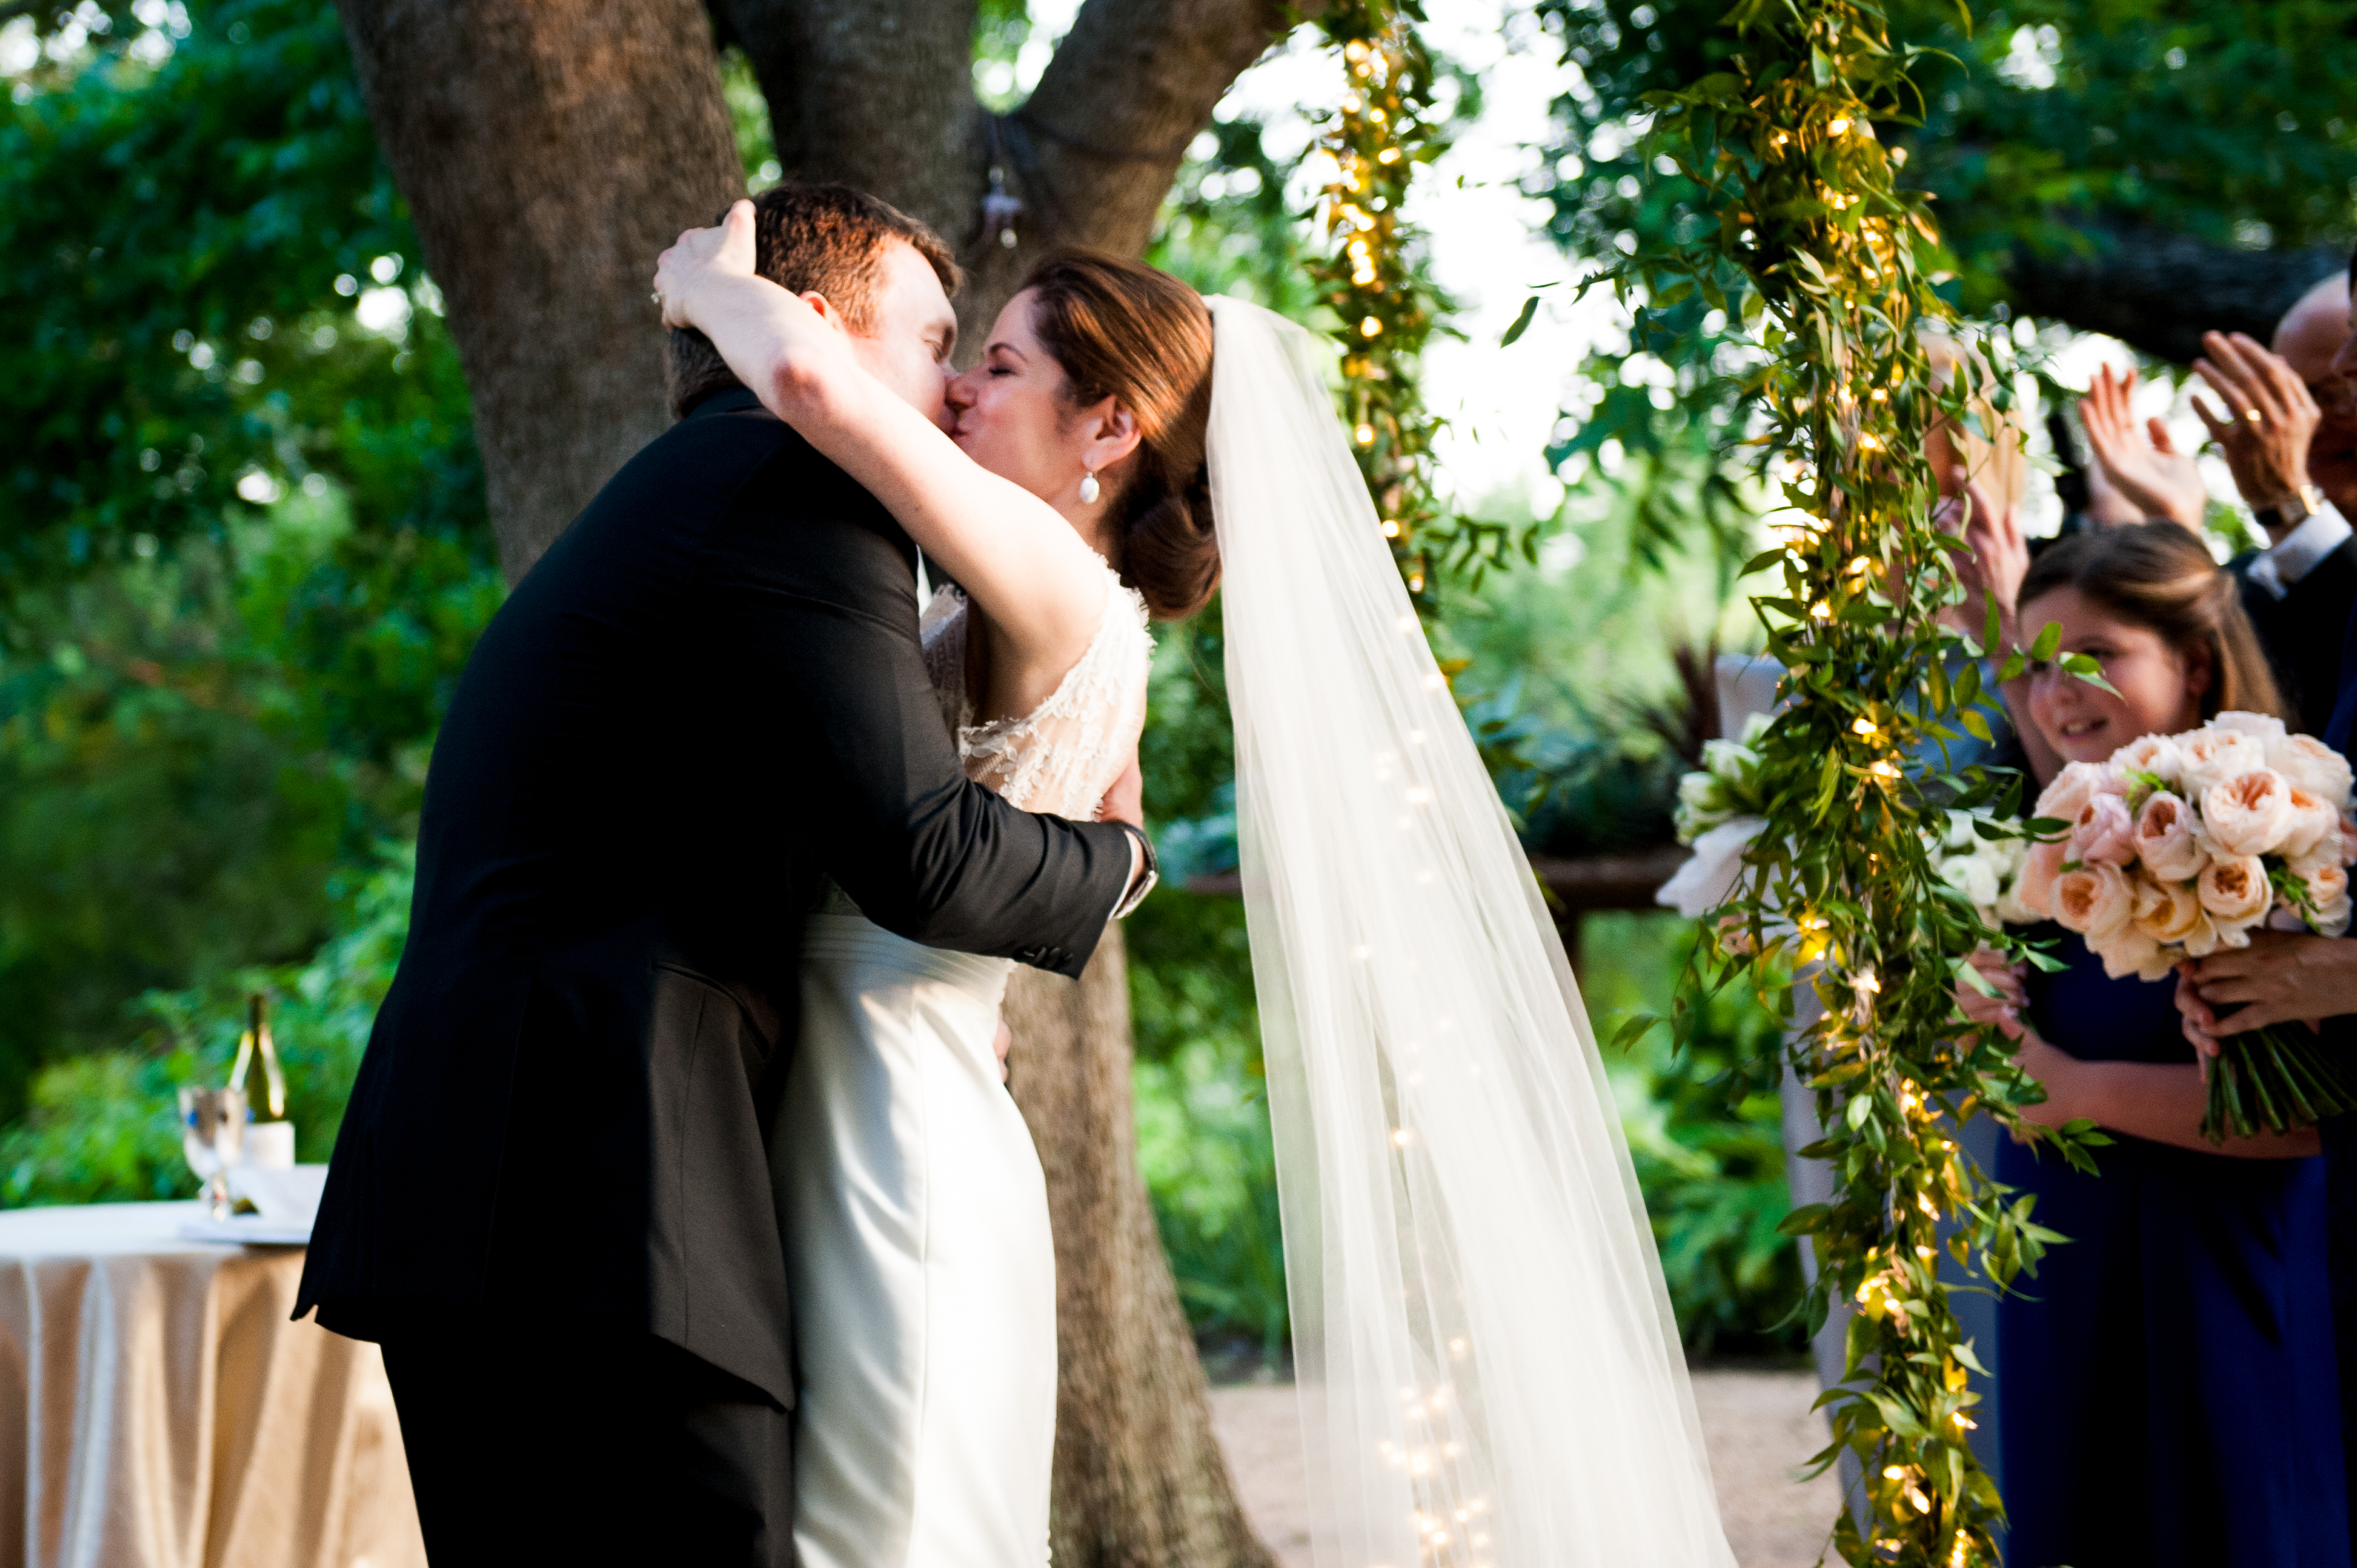 four-season-austin-jewish-wedding-coryryan-photography-13